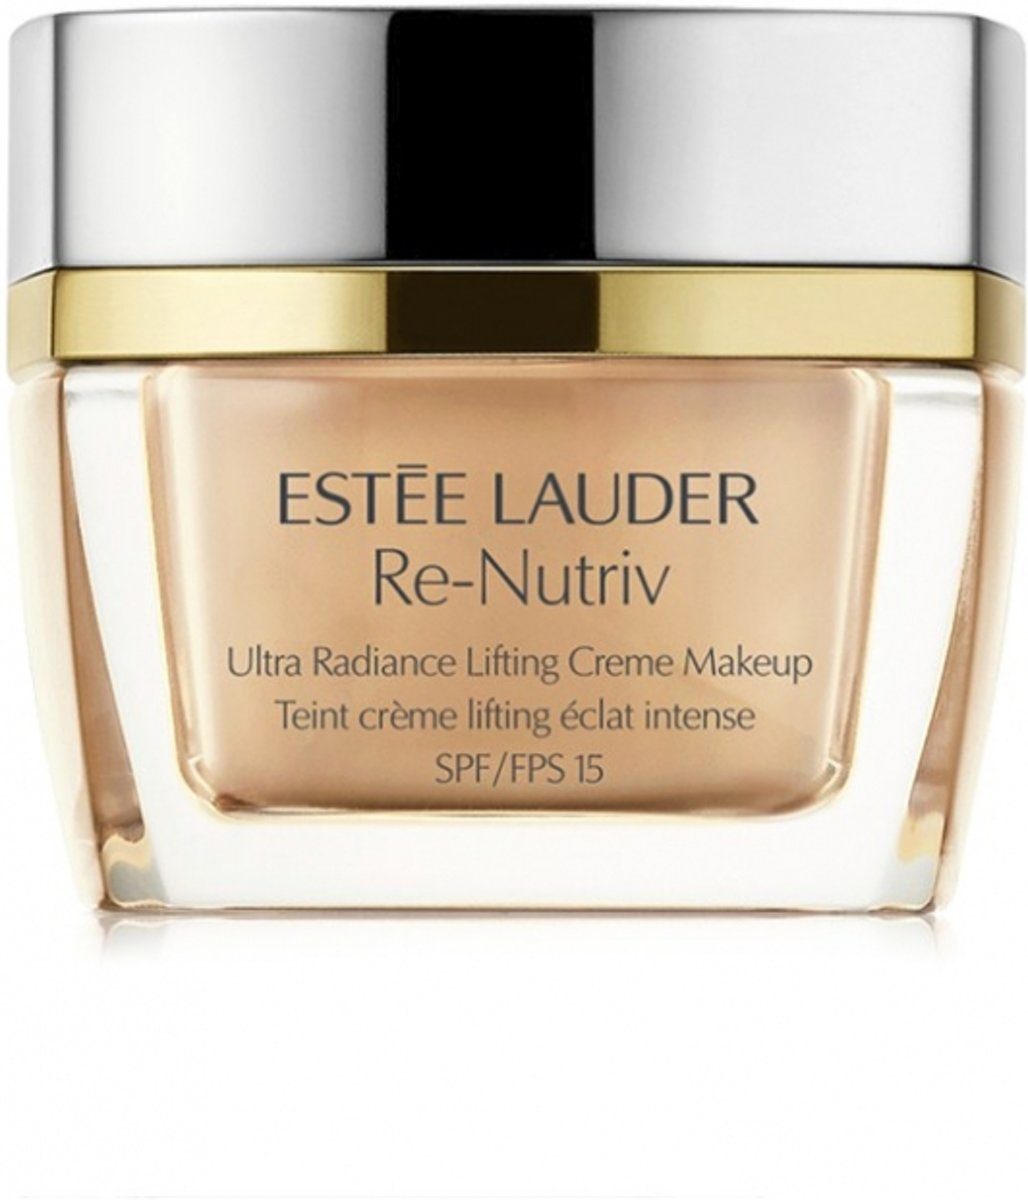 Estée Lauder Re-Nutriv Ultra Radiance Lifting Creme Make-up Foundation 30 ml - 2N1 - Desert Beige